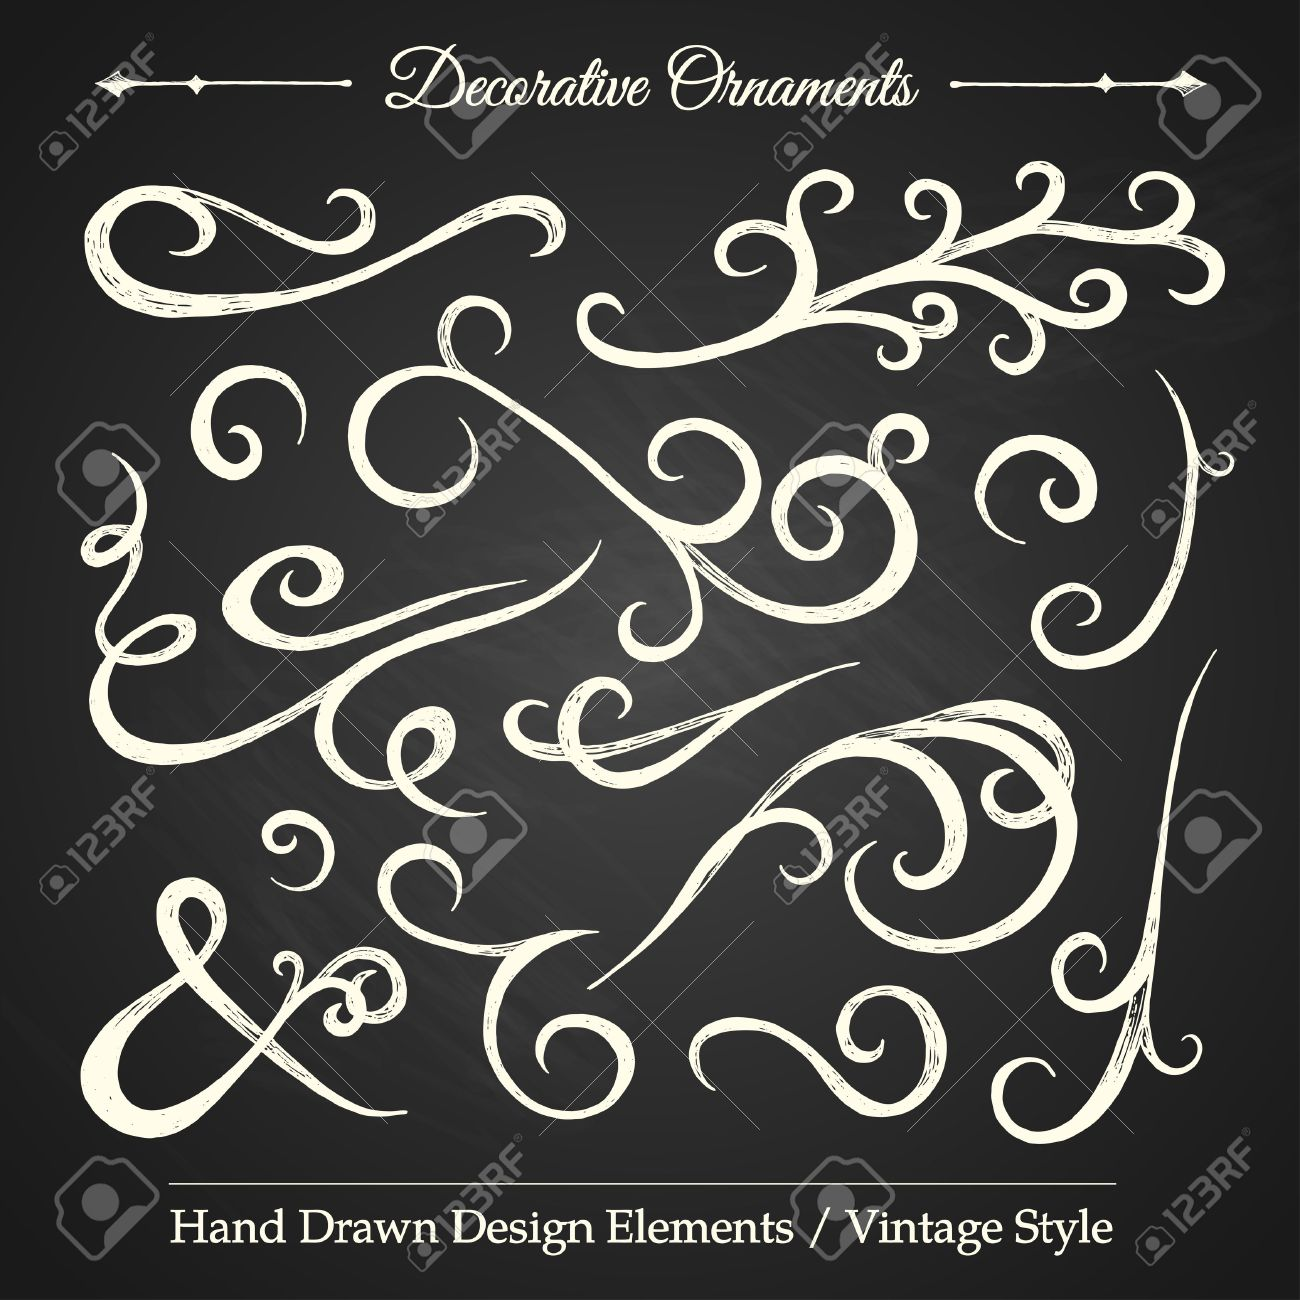 Vintage style ornaments - Decorative Ornaments Hand Drawn Design Elements Vintage Style On Chalkboard Stock Vector 26764406